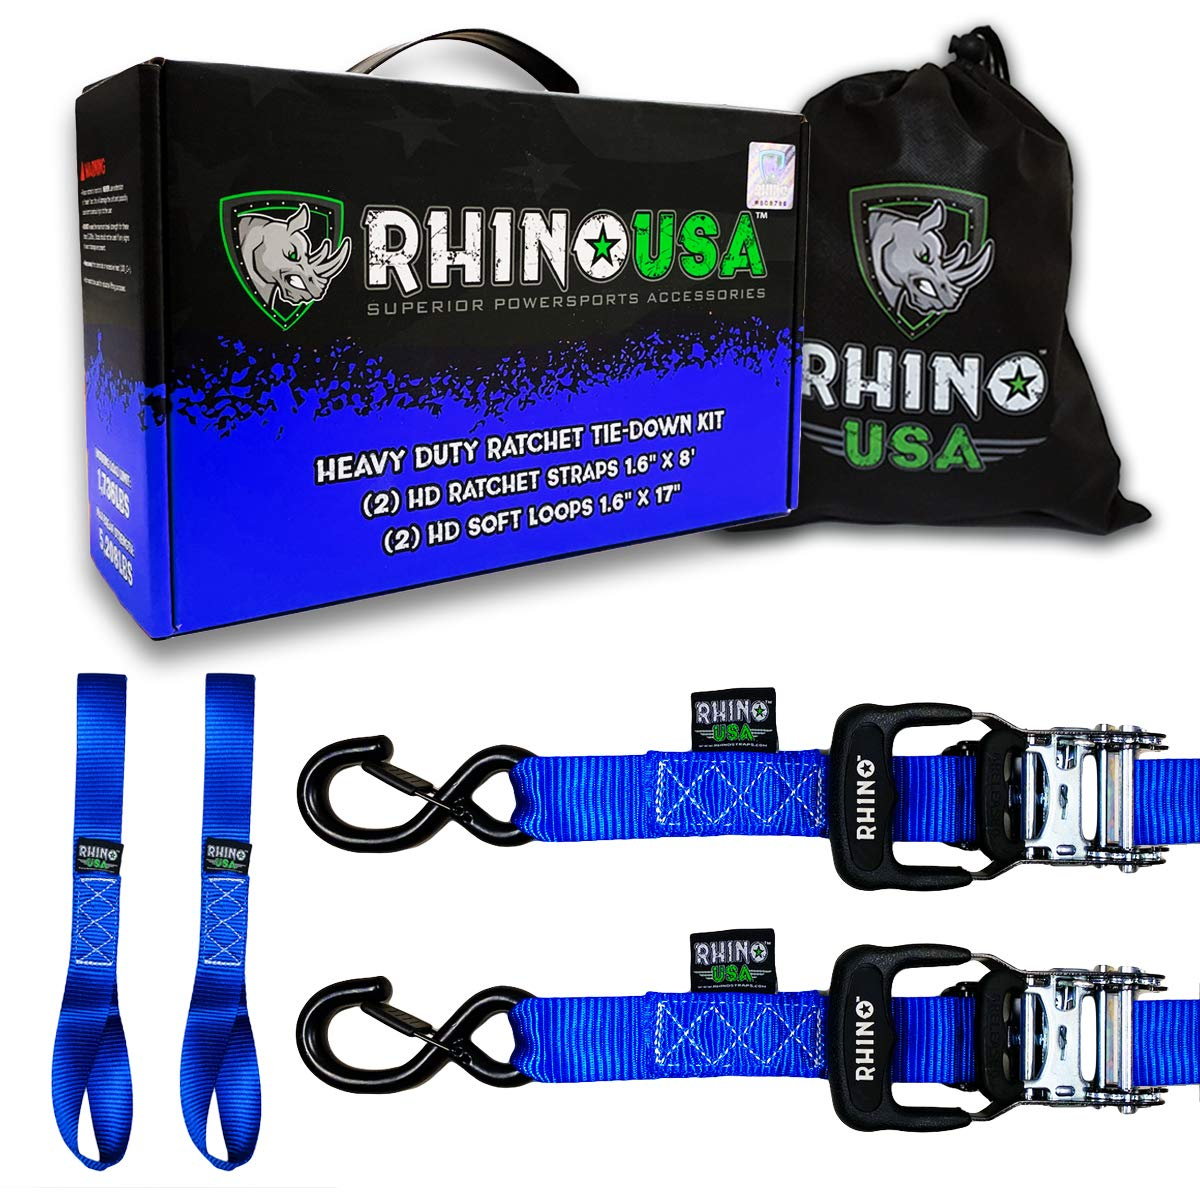 RHINO USA Ratchet Straps Motorcycle Tie Down Kit, 5,208 Break Strength - (2) Heavy Duty 1.6'' x 8' Rachet Tiedowns with Padded Handles & Coated Chromoly S Hooks + (2) Soft Loop Tie-Downs (BLUE)